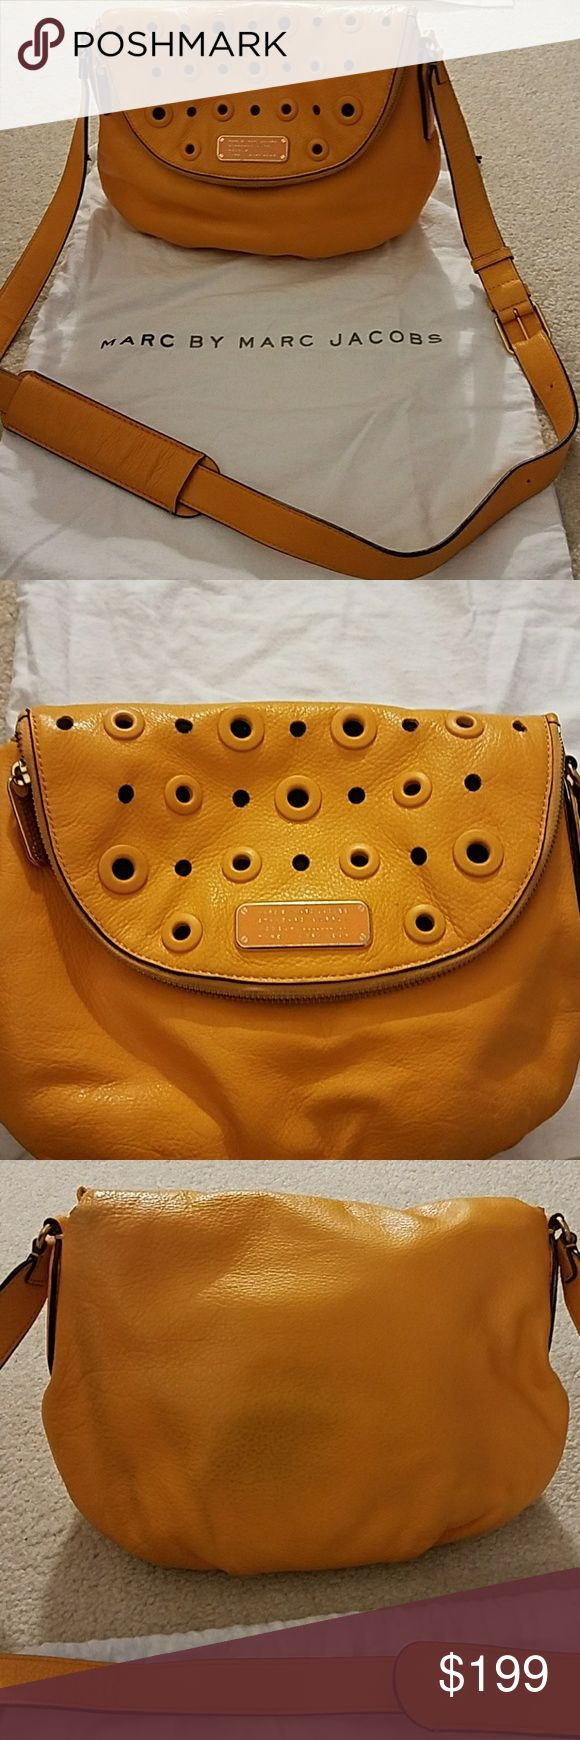 Authentic Marc Jacobs Crossbody Beautiful sundance orange purse with adjustable strap. Perfect for spring and summer. I always get tons of compliments on this bag. Magnetic button closure. Also has a zipper along the edge flap which houses an additional pocket. Comes with original duster bag.   Great condition. The back of the purse does have a dark shaded area from new jeans that rubbed against it. See picture. Marc by Marc Jacobs Bags Crossbody Bags